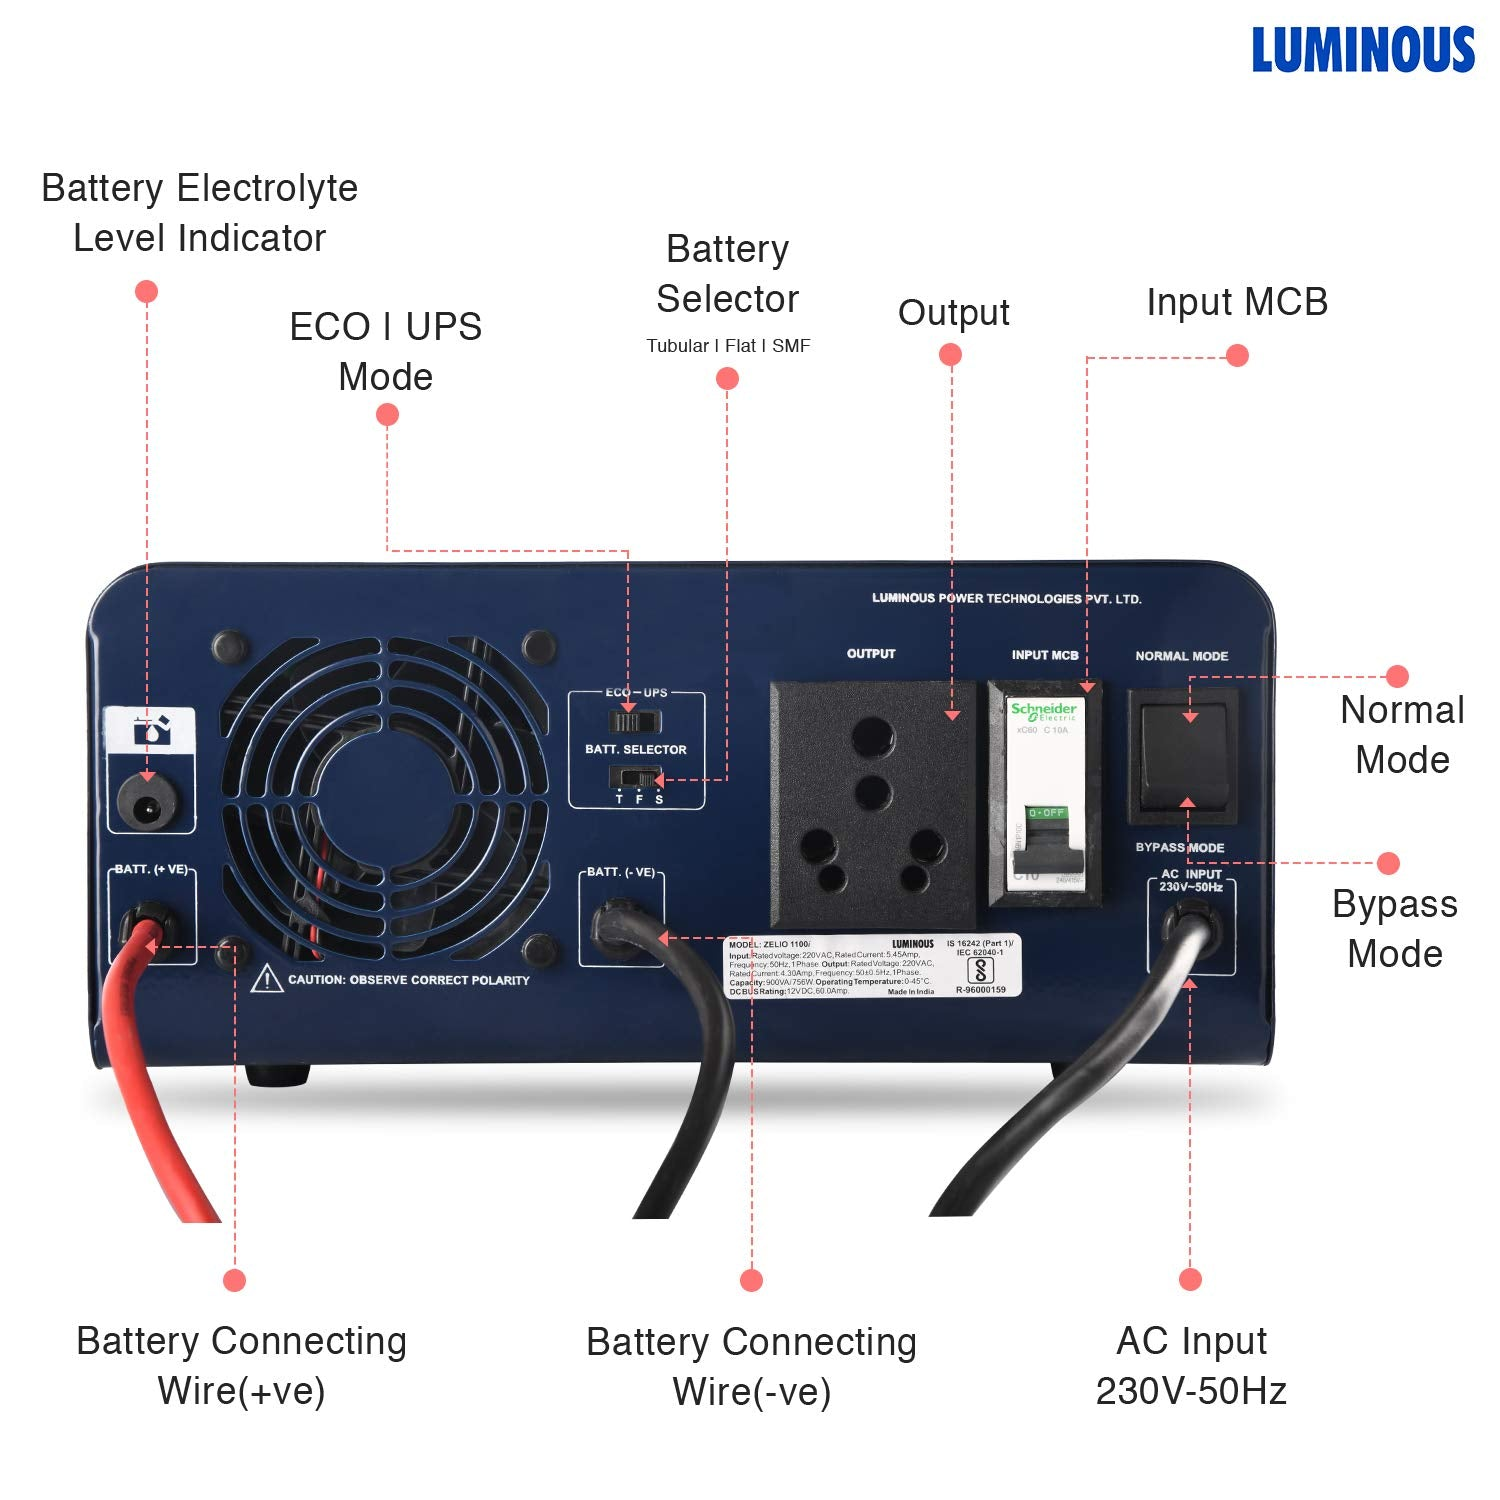 luminous zelio 1100i smart home ups | Sine Wave Inverter